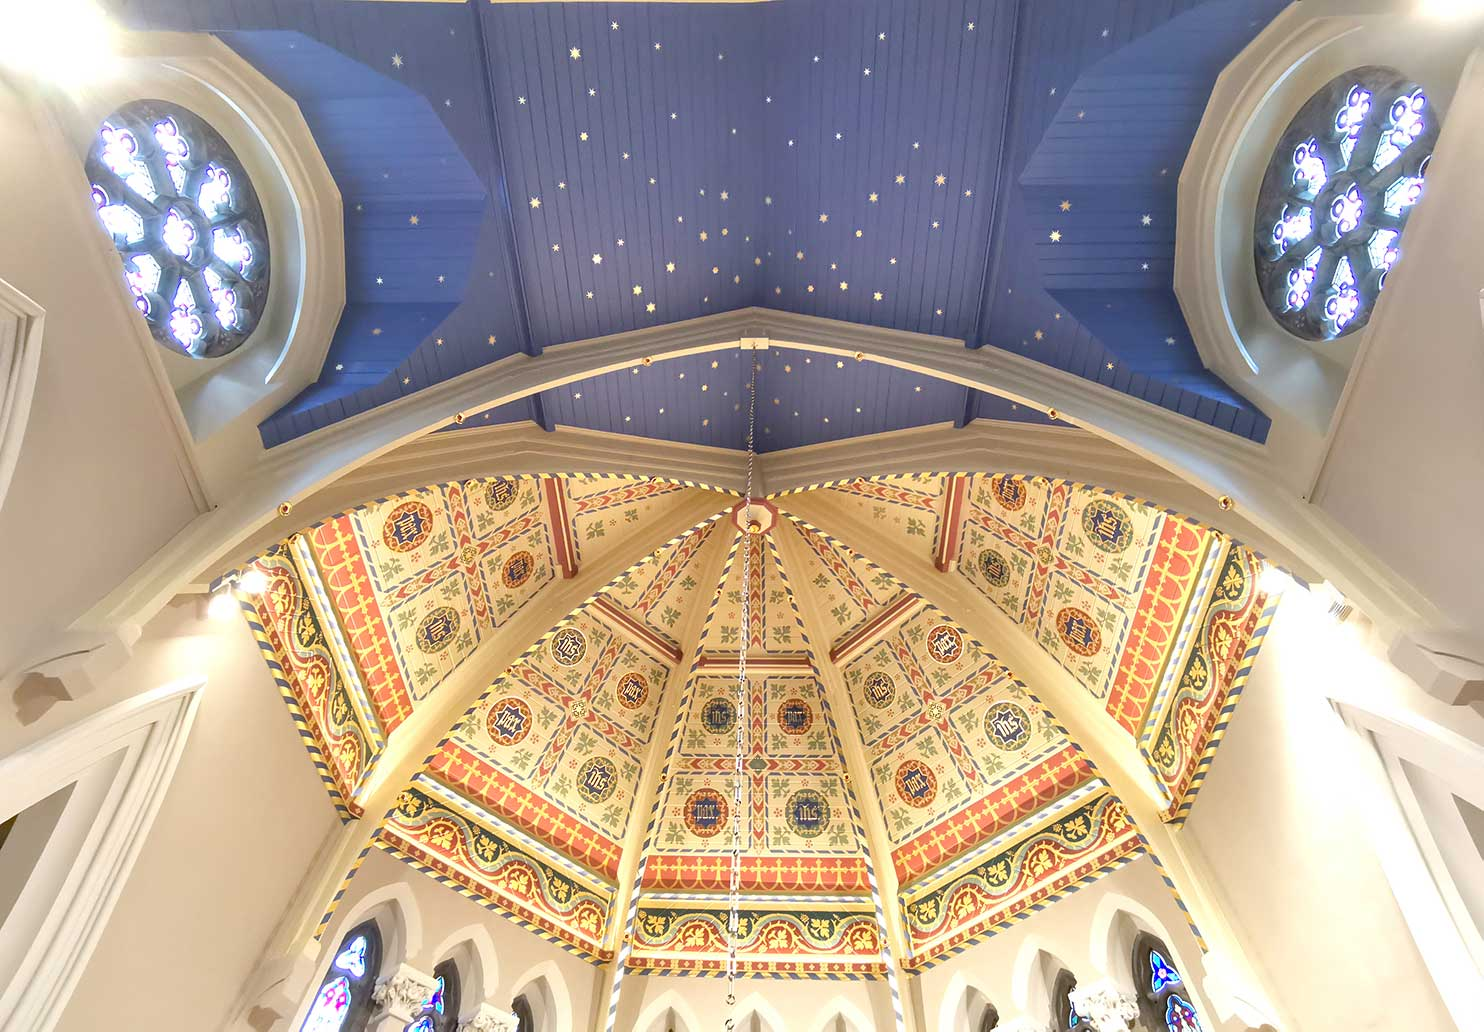 The Apse in historic St Gregory The Great Catholic Church in Stratford-upon-Avon, restored to its original Pugin design during 2020 by Garry Kness of Pro Murals, muralartist@gmail.com